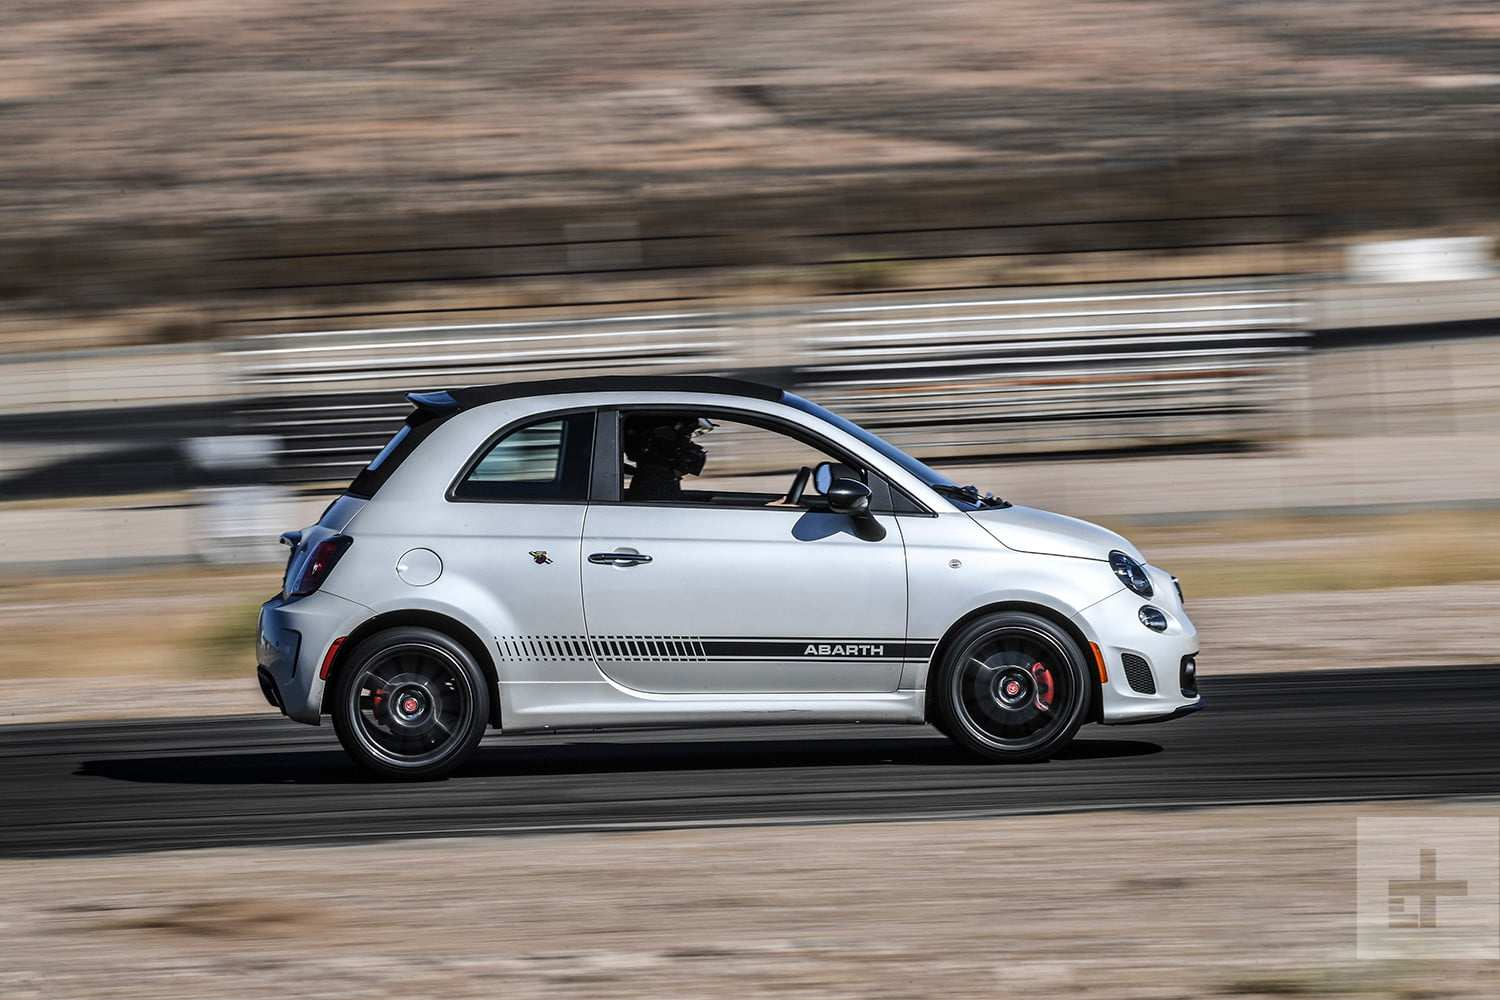 97 Gallery of 2019 Fiat 500 Abarth Pictures with 2019 Fiat 500 Abarth